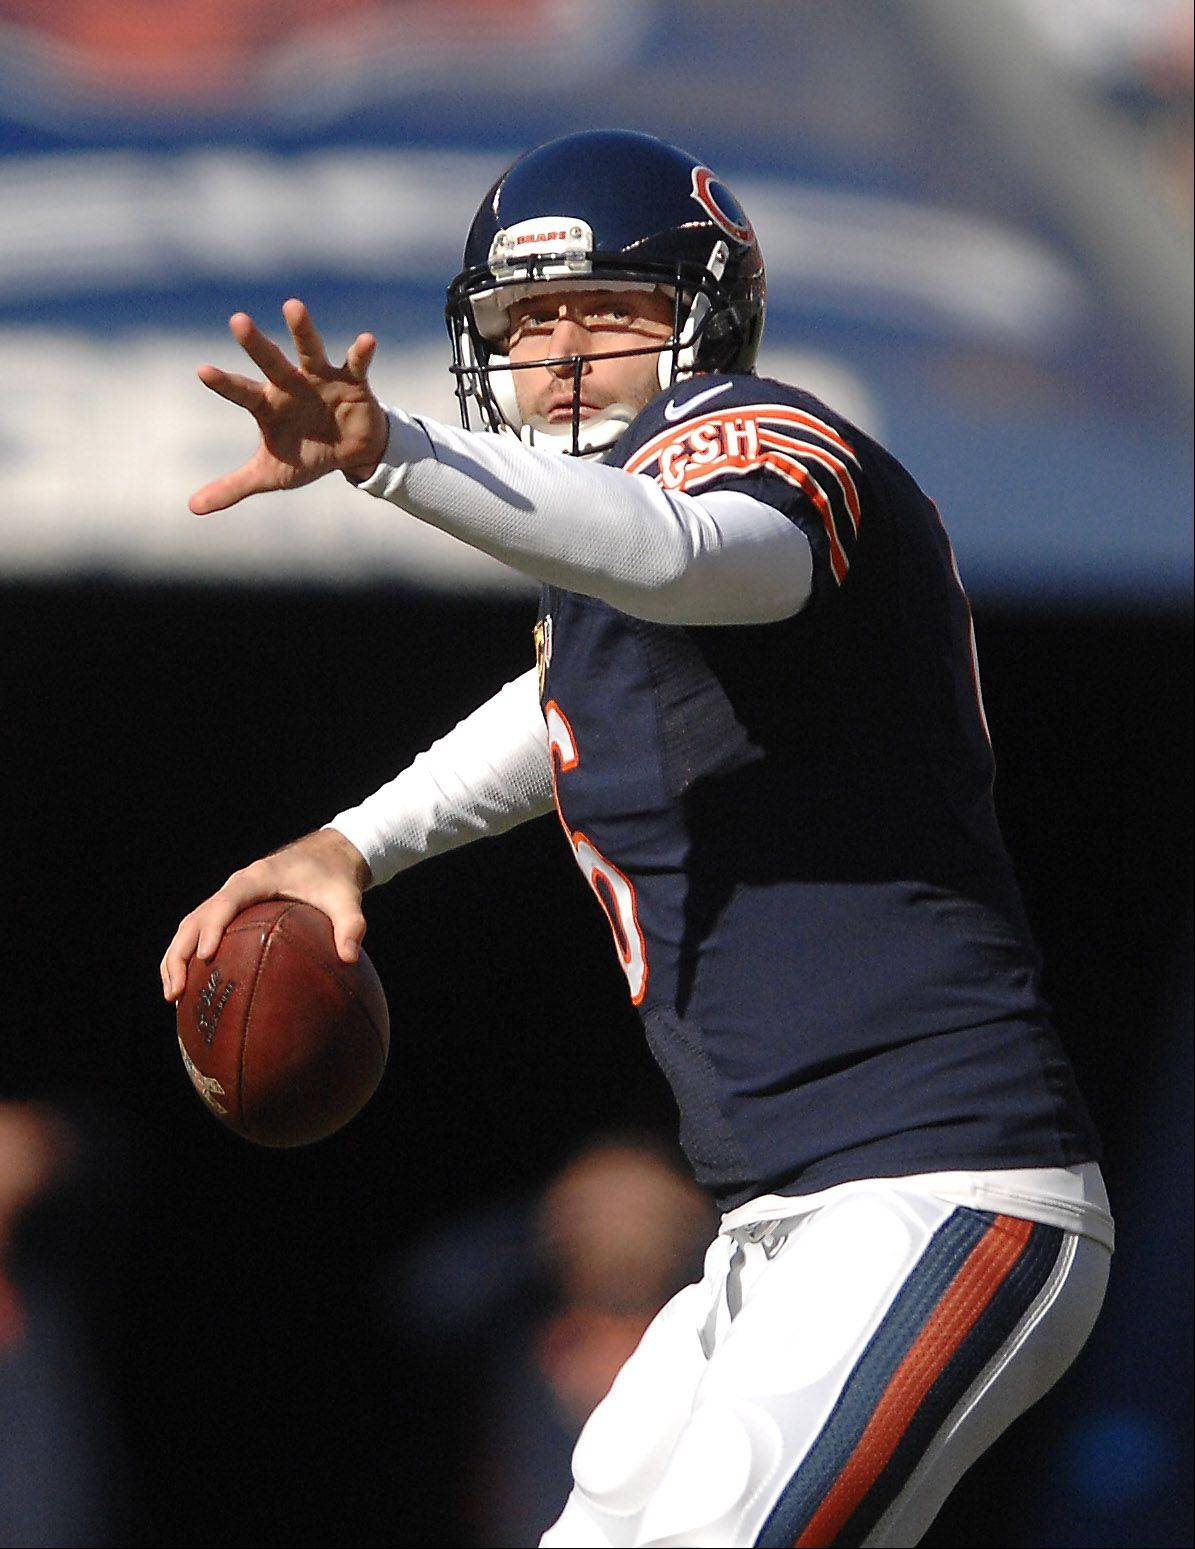 One thing about Bears quarterback Jay Cutler, there's never a dull moment.